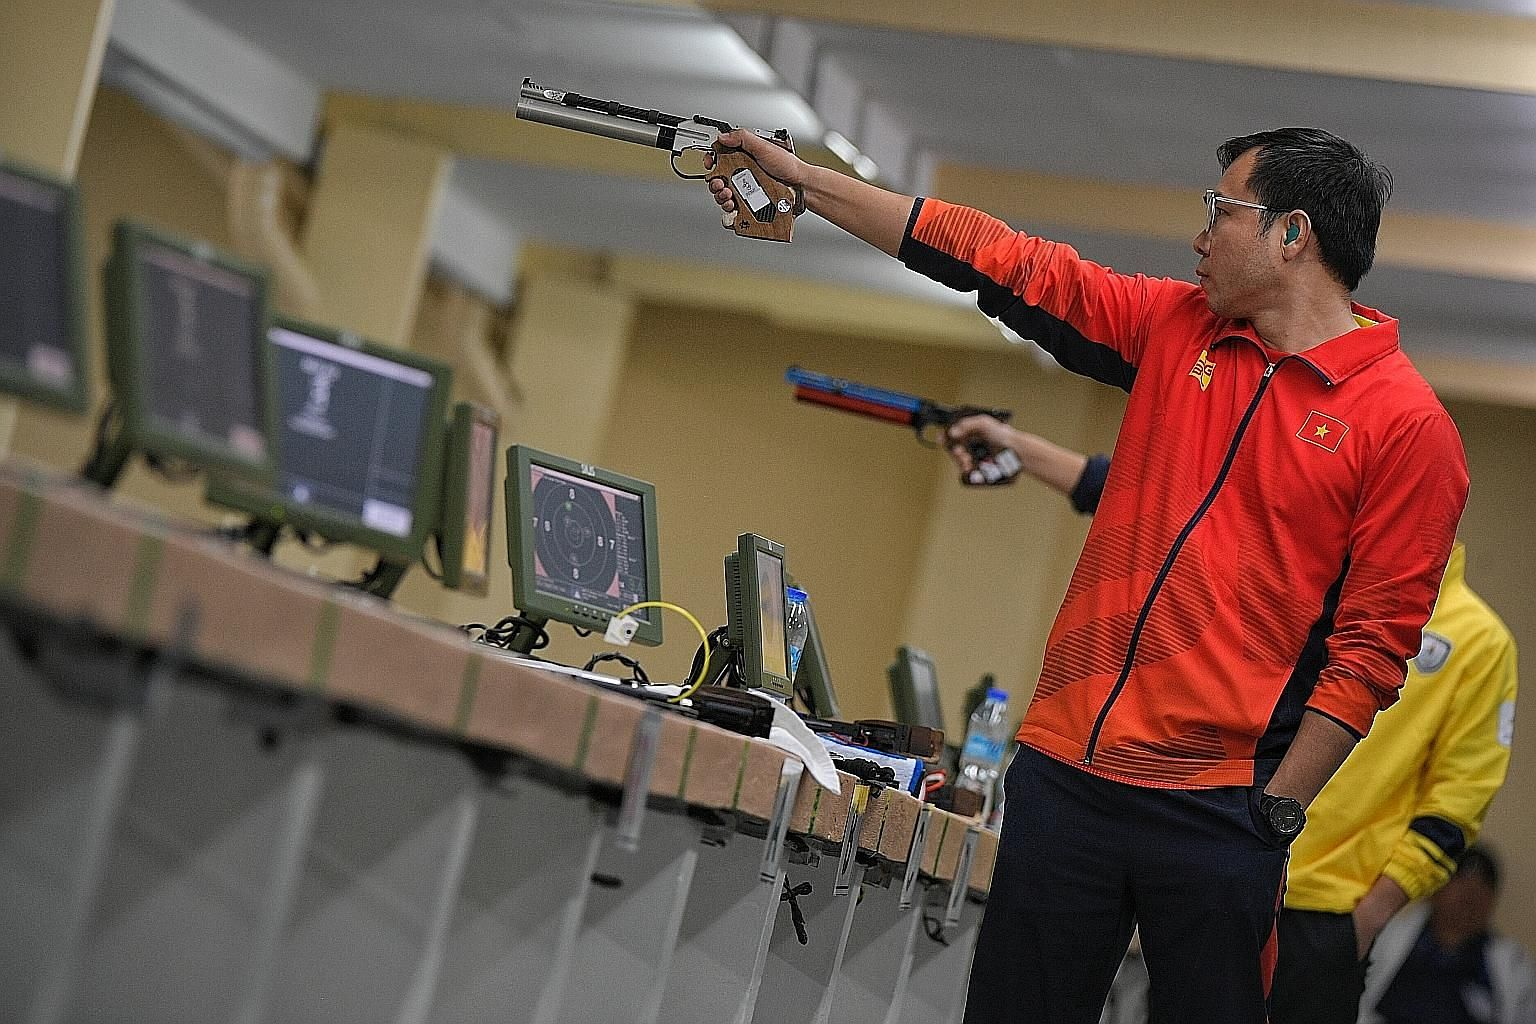 These SEA Games are Hoang Xuan Vinh's 10th and, at 45, they could be his last.